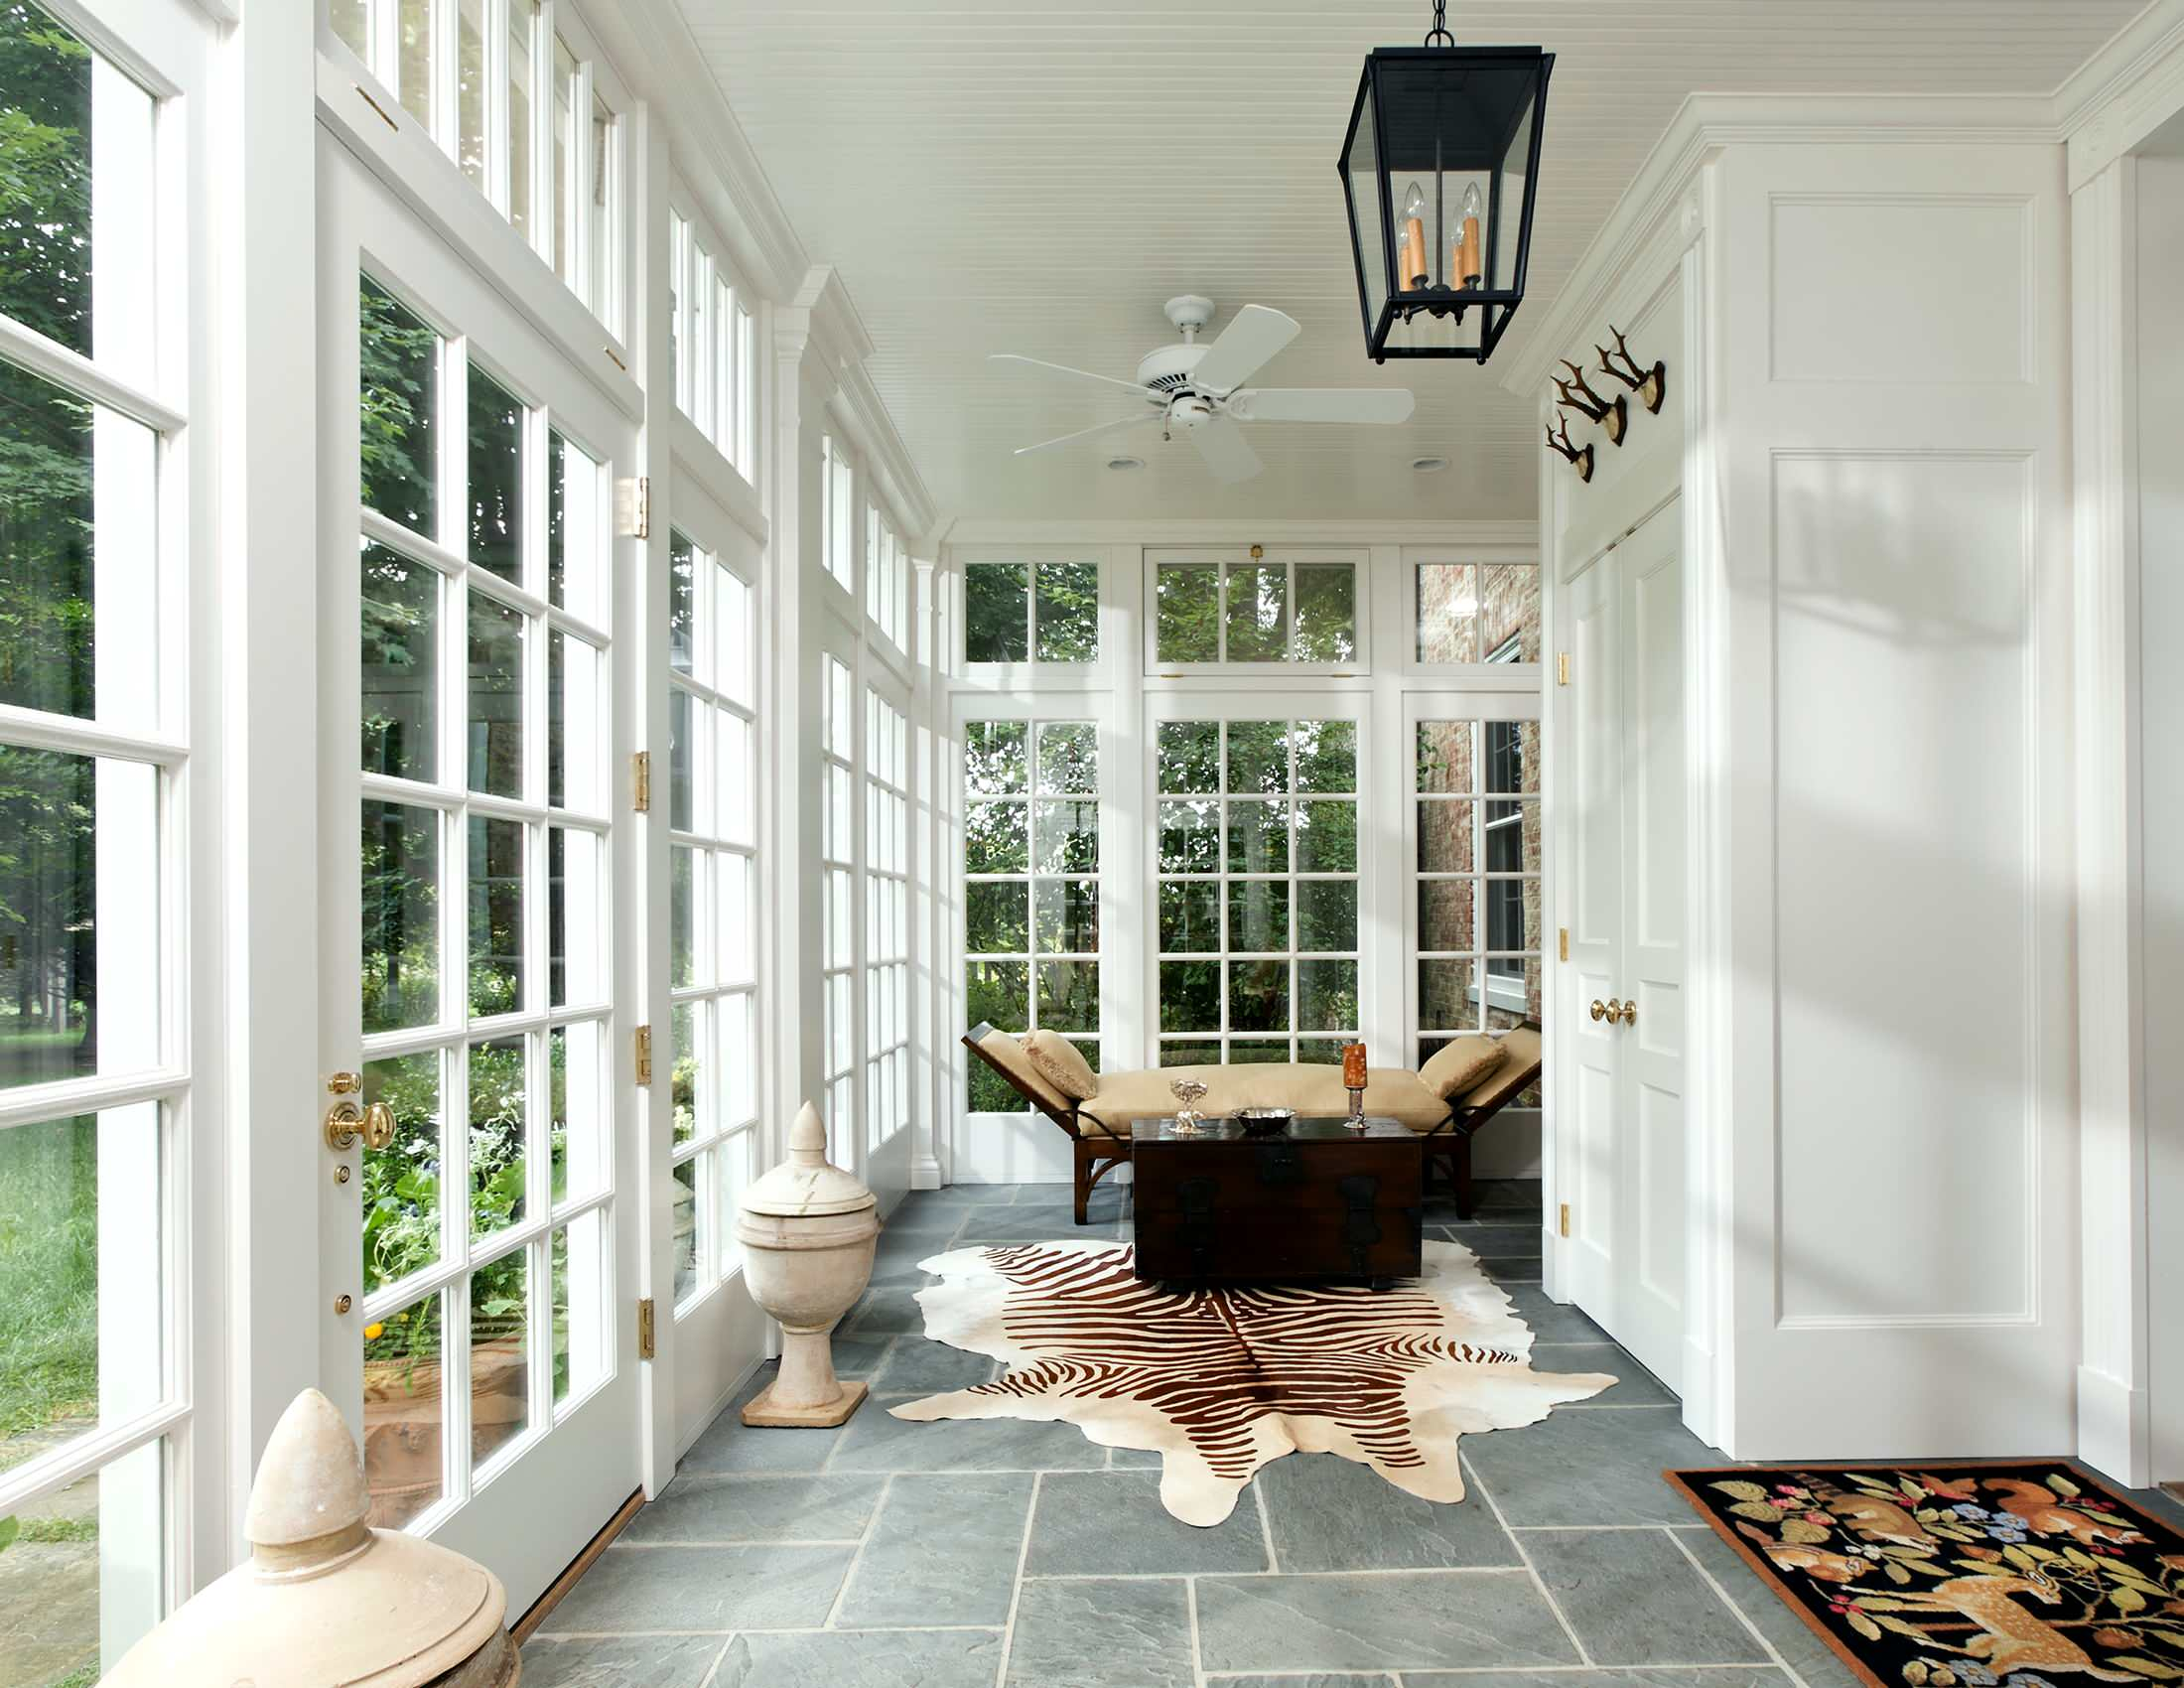 slate flooring tile sunroom traditional georgian mansion style decor interior underfloor heating for outdoor indoor spaces shop room ideas